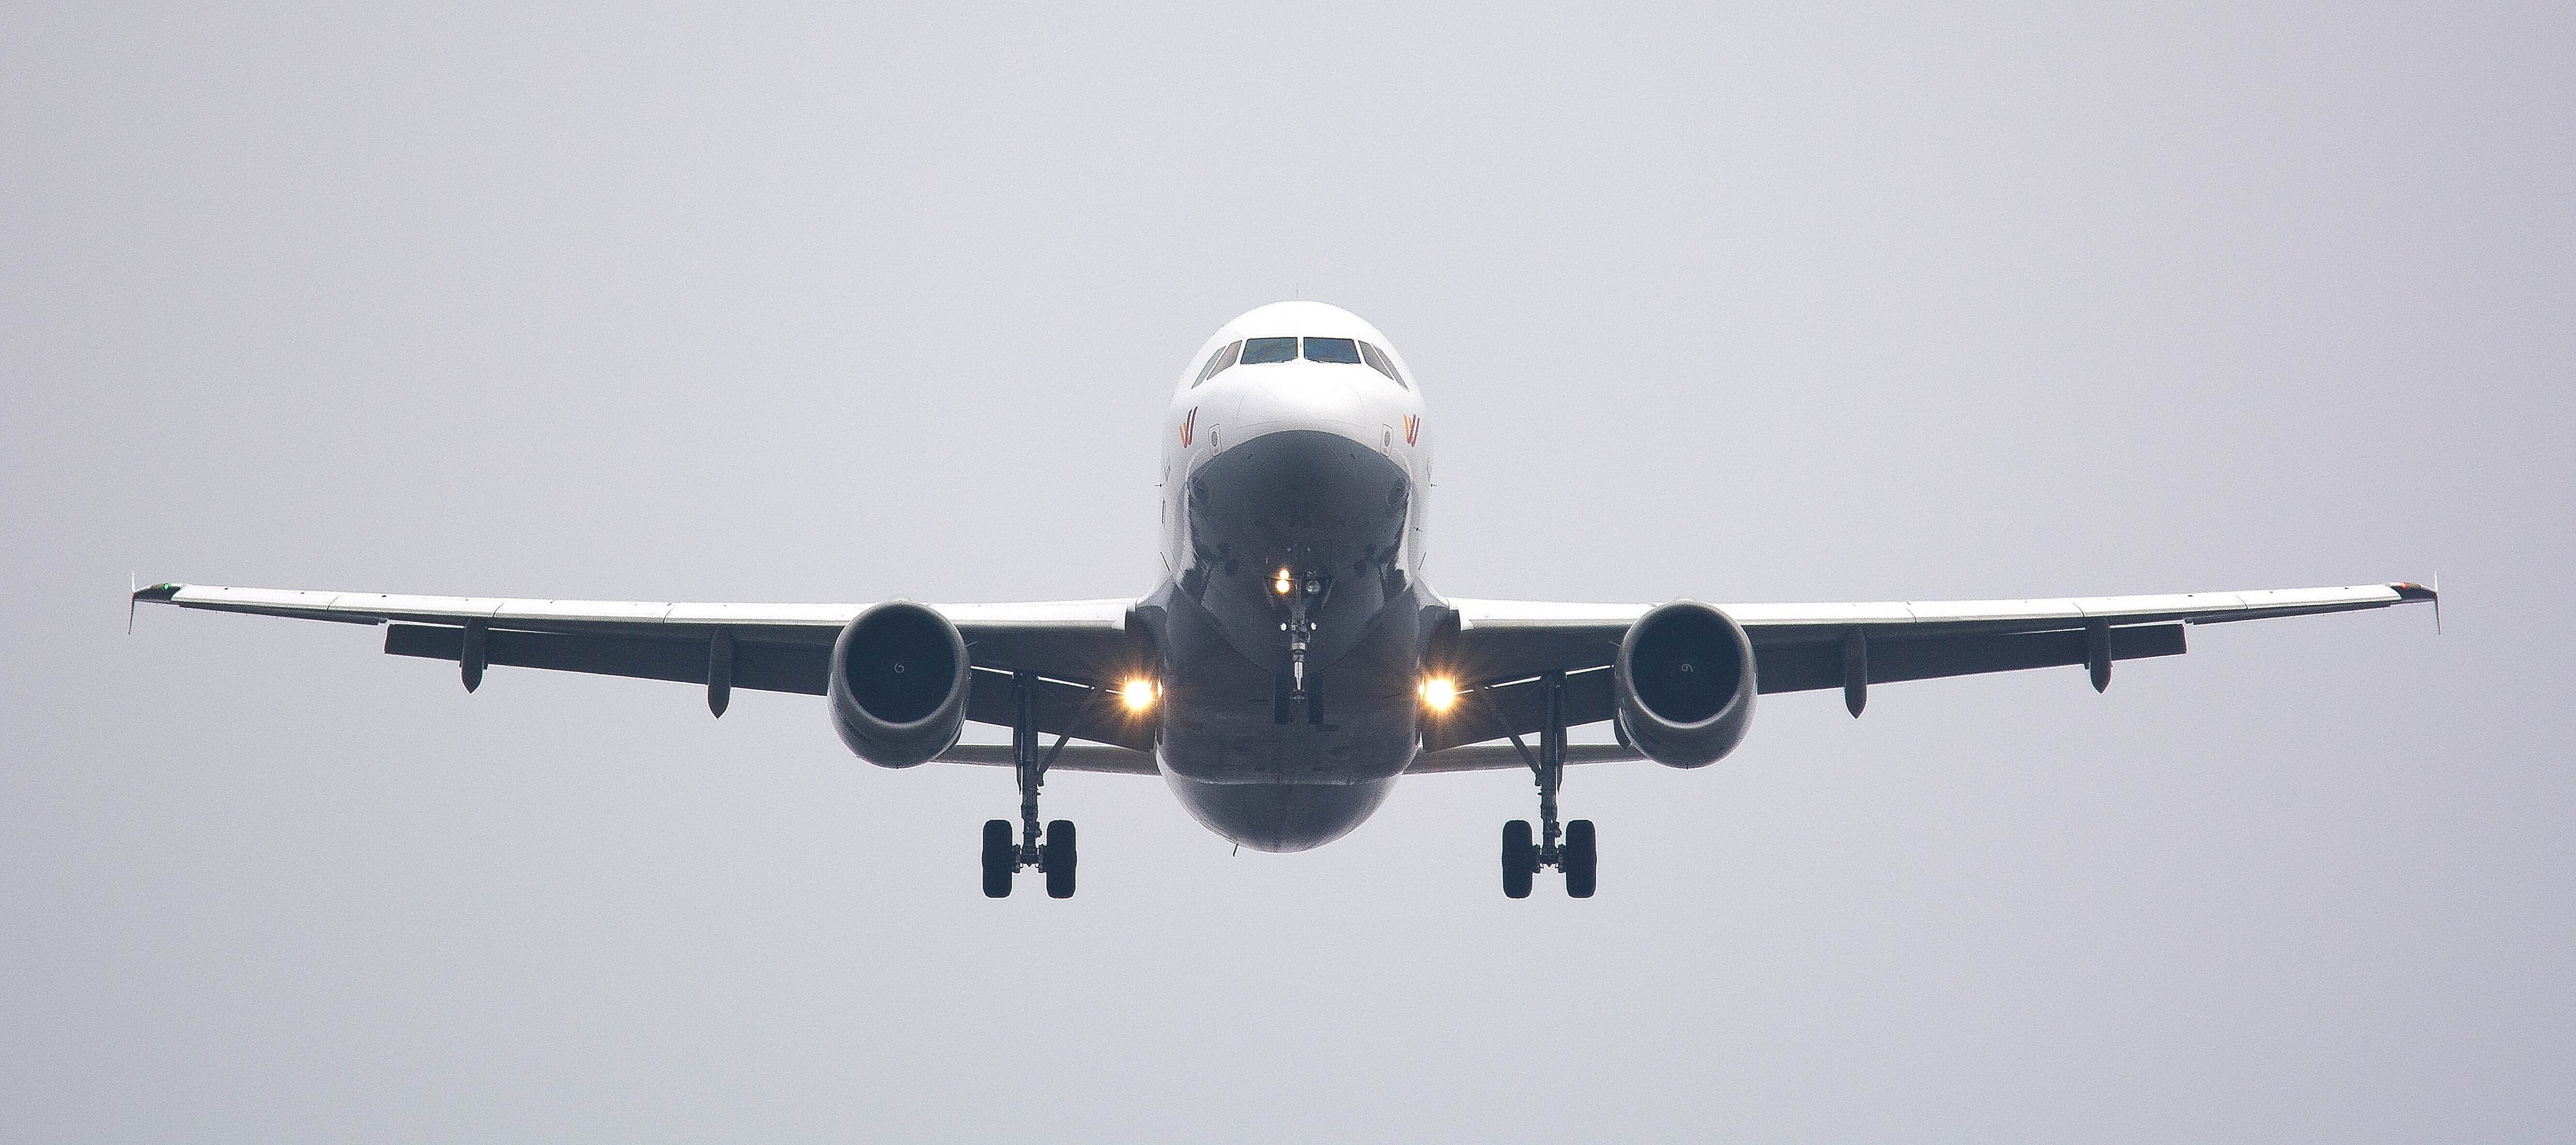 Airbus is fully embracing the power of IoT technology